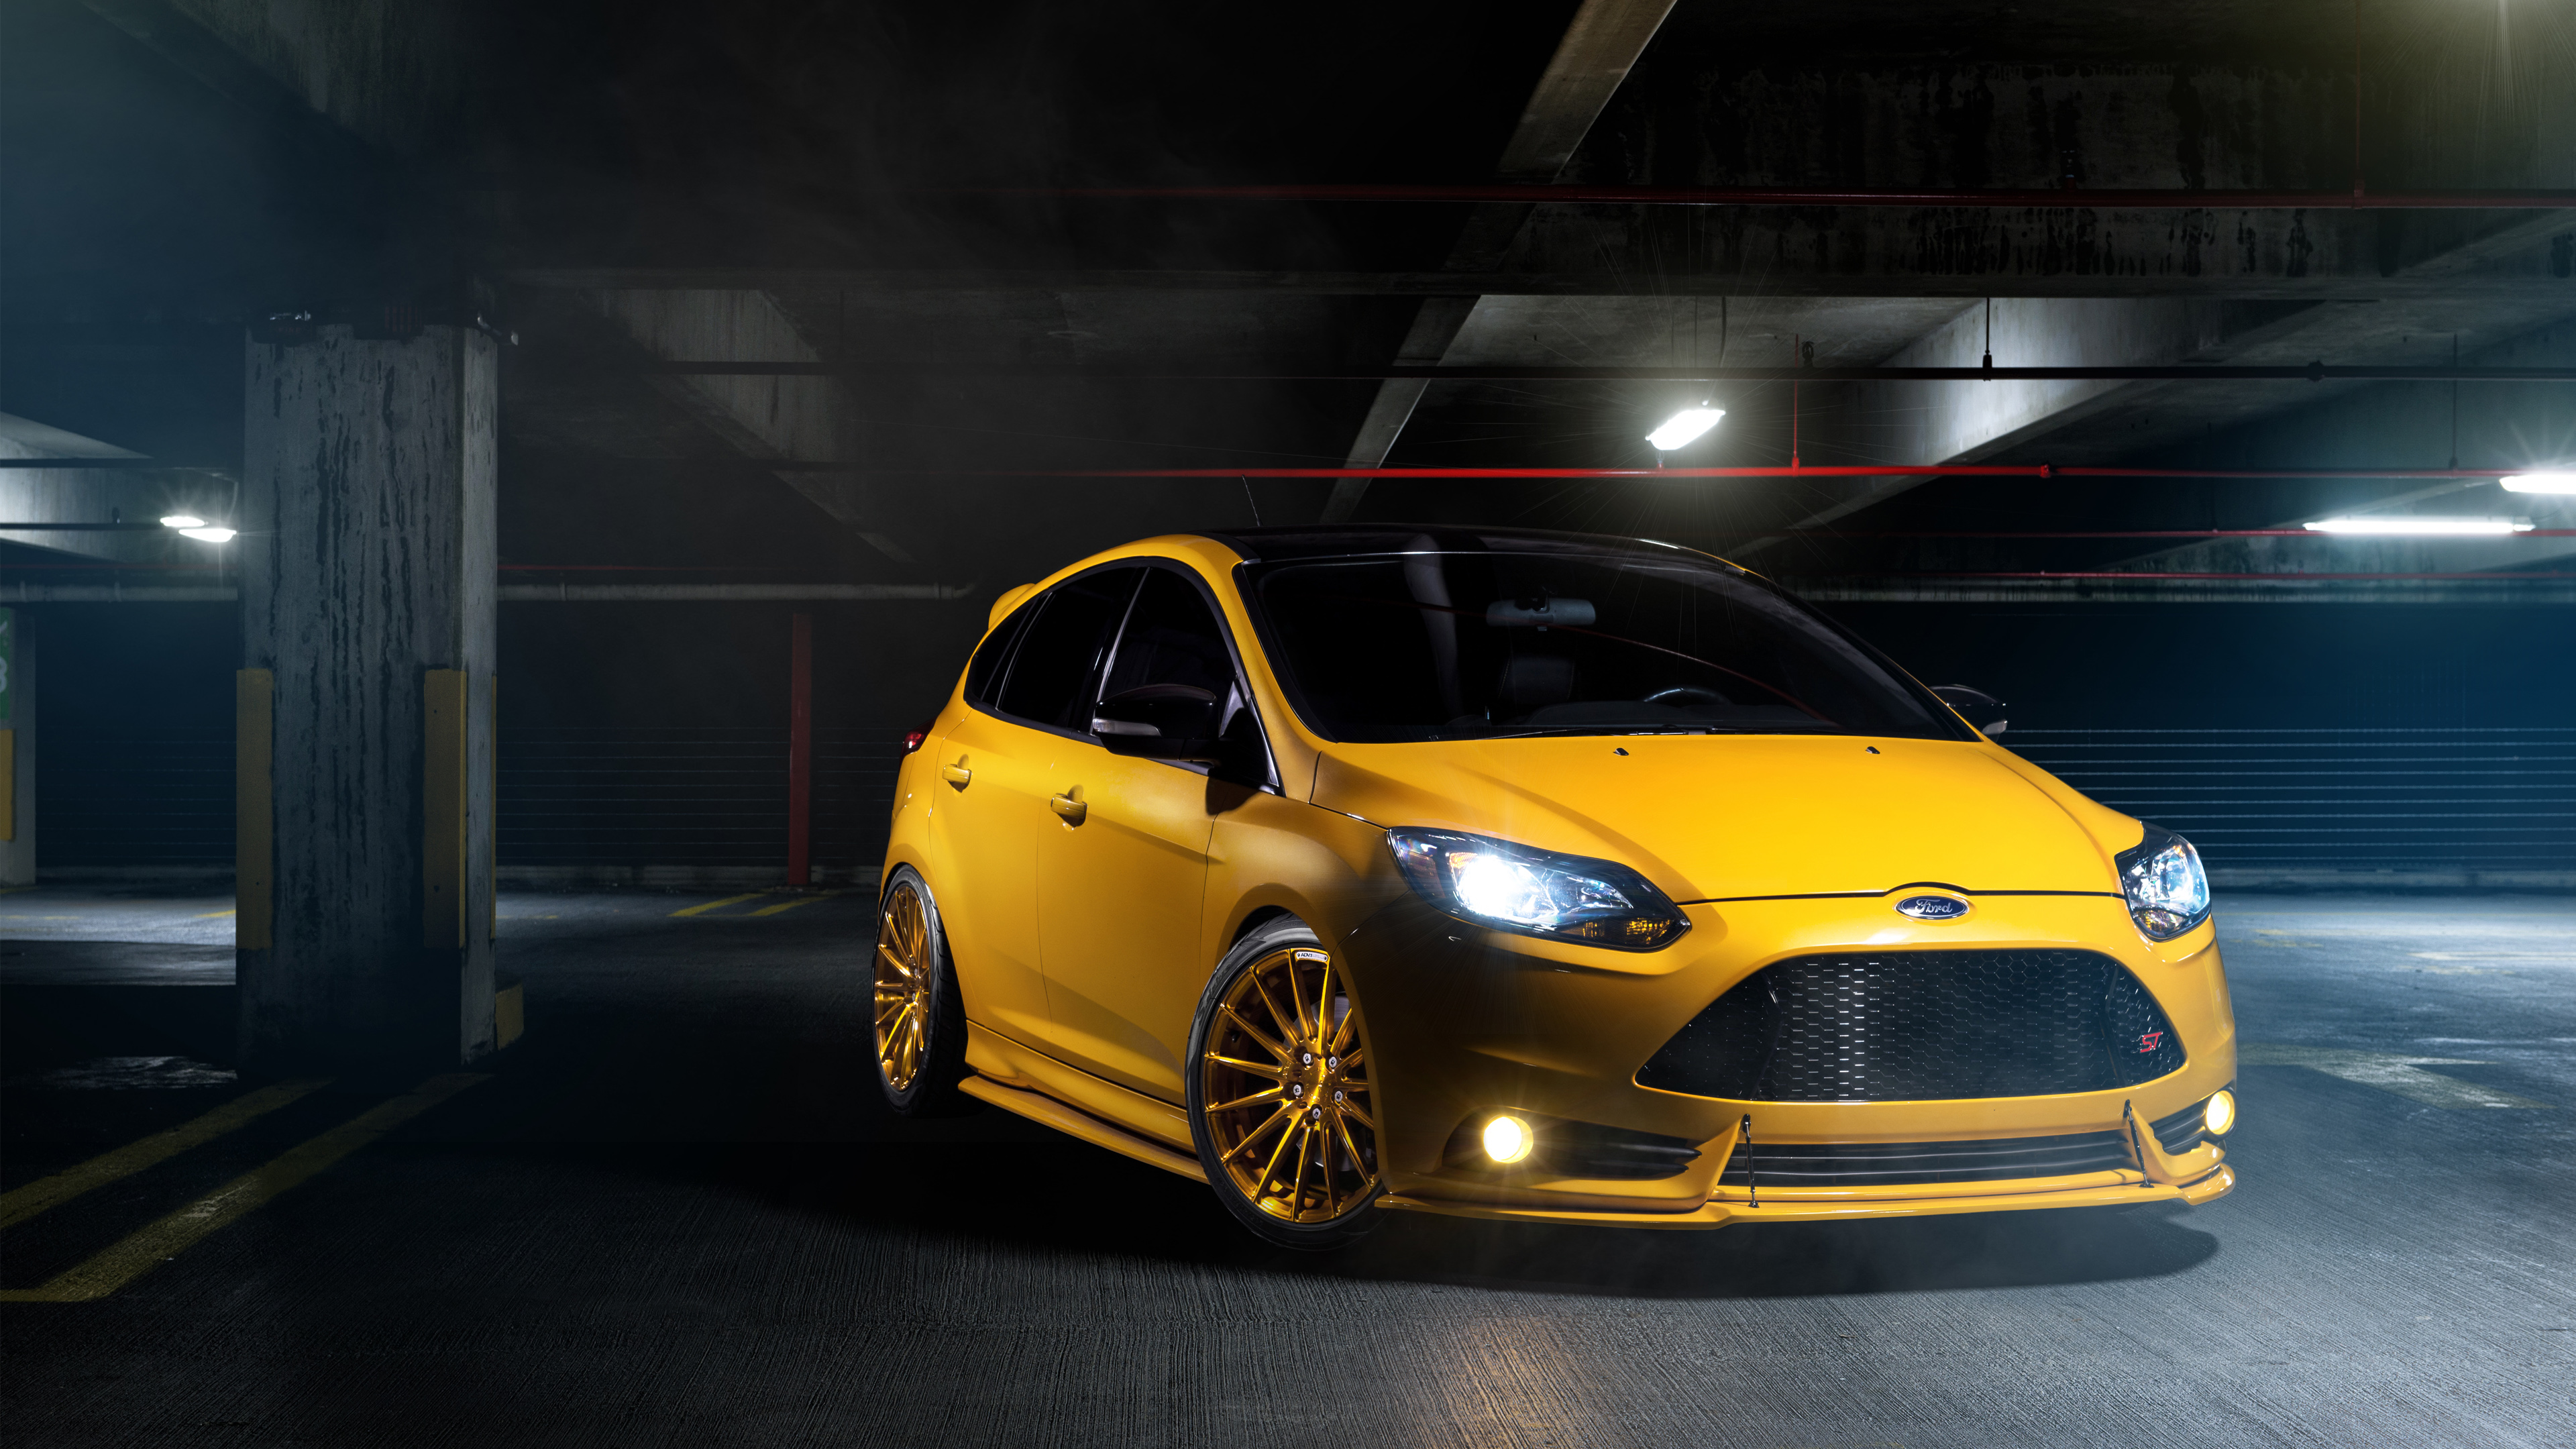 Ford Focus St Wallpaper Hd Car Wallpapers